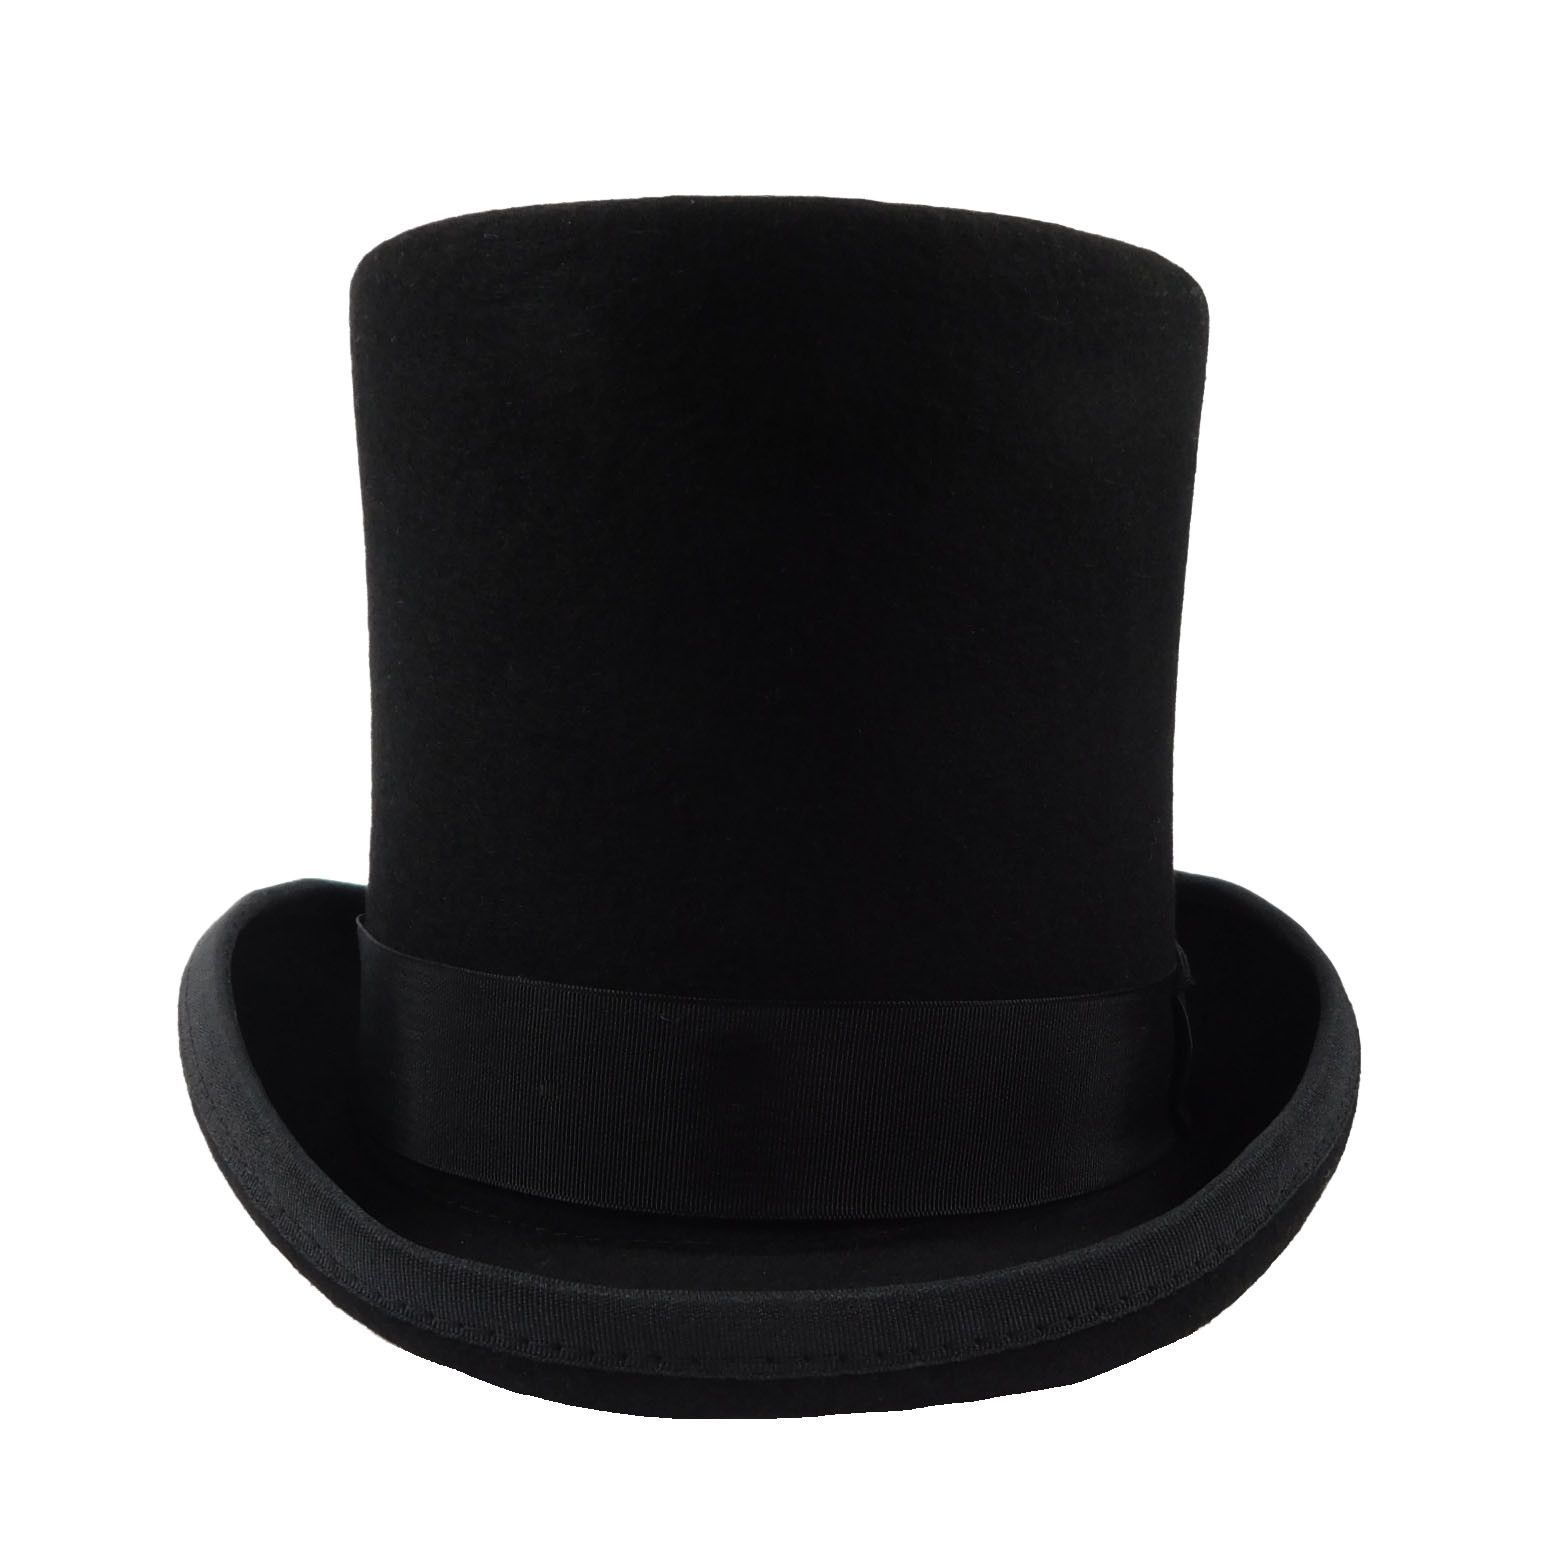 a5b9da8540a Tall Wool Felt Top Hat with Satin Lining